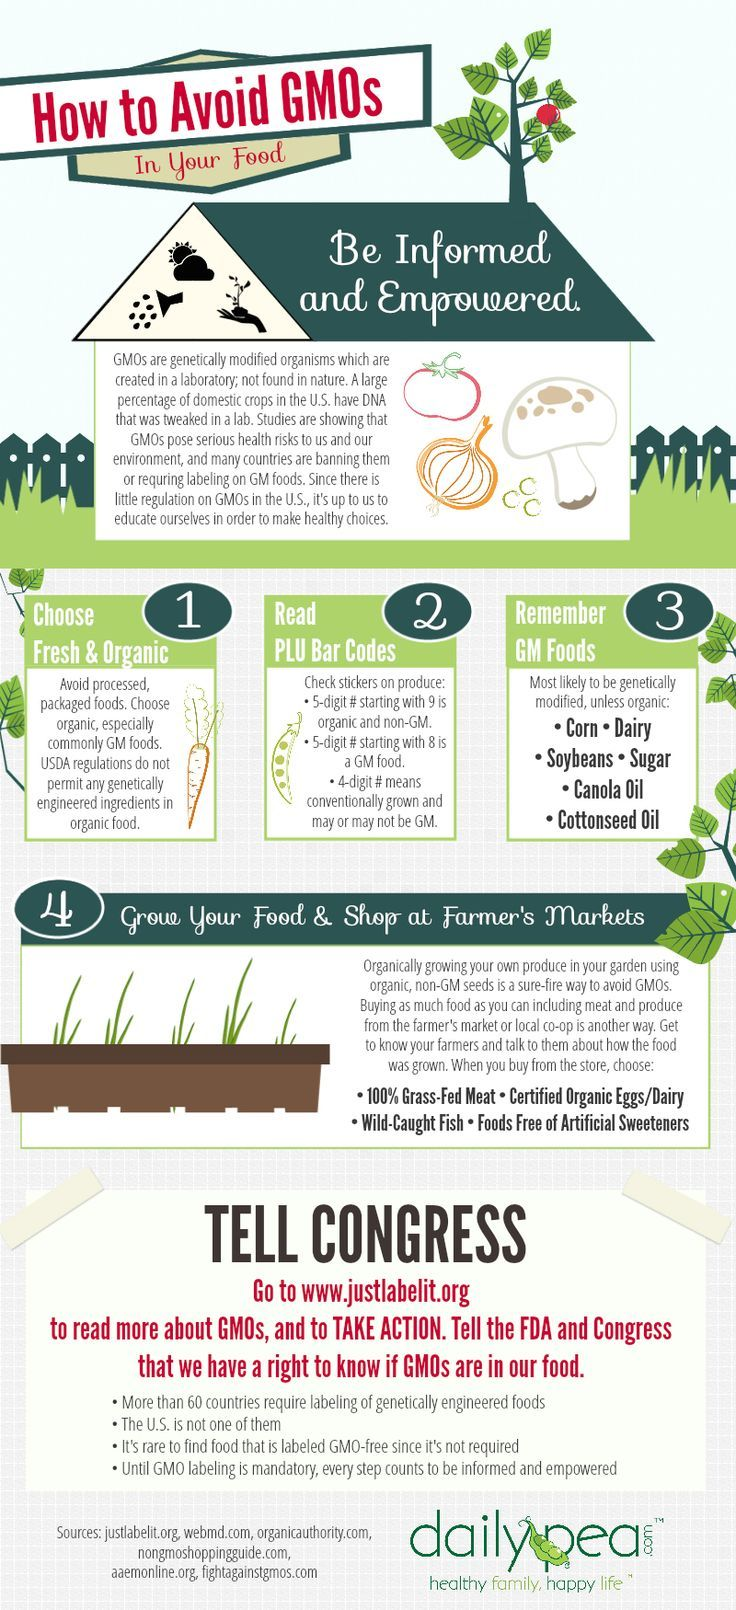 Want to Completely Avoid GMOs in Your Food? Check Out These 3 Tips Now! http://homeandgardenamerica.com/how-to-avoid-gmos